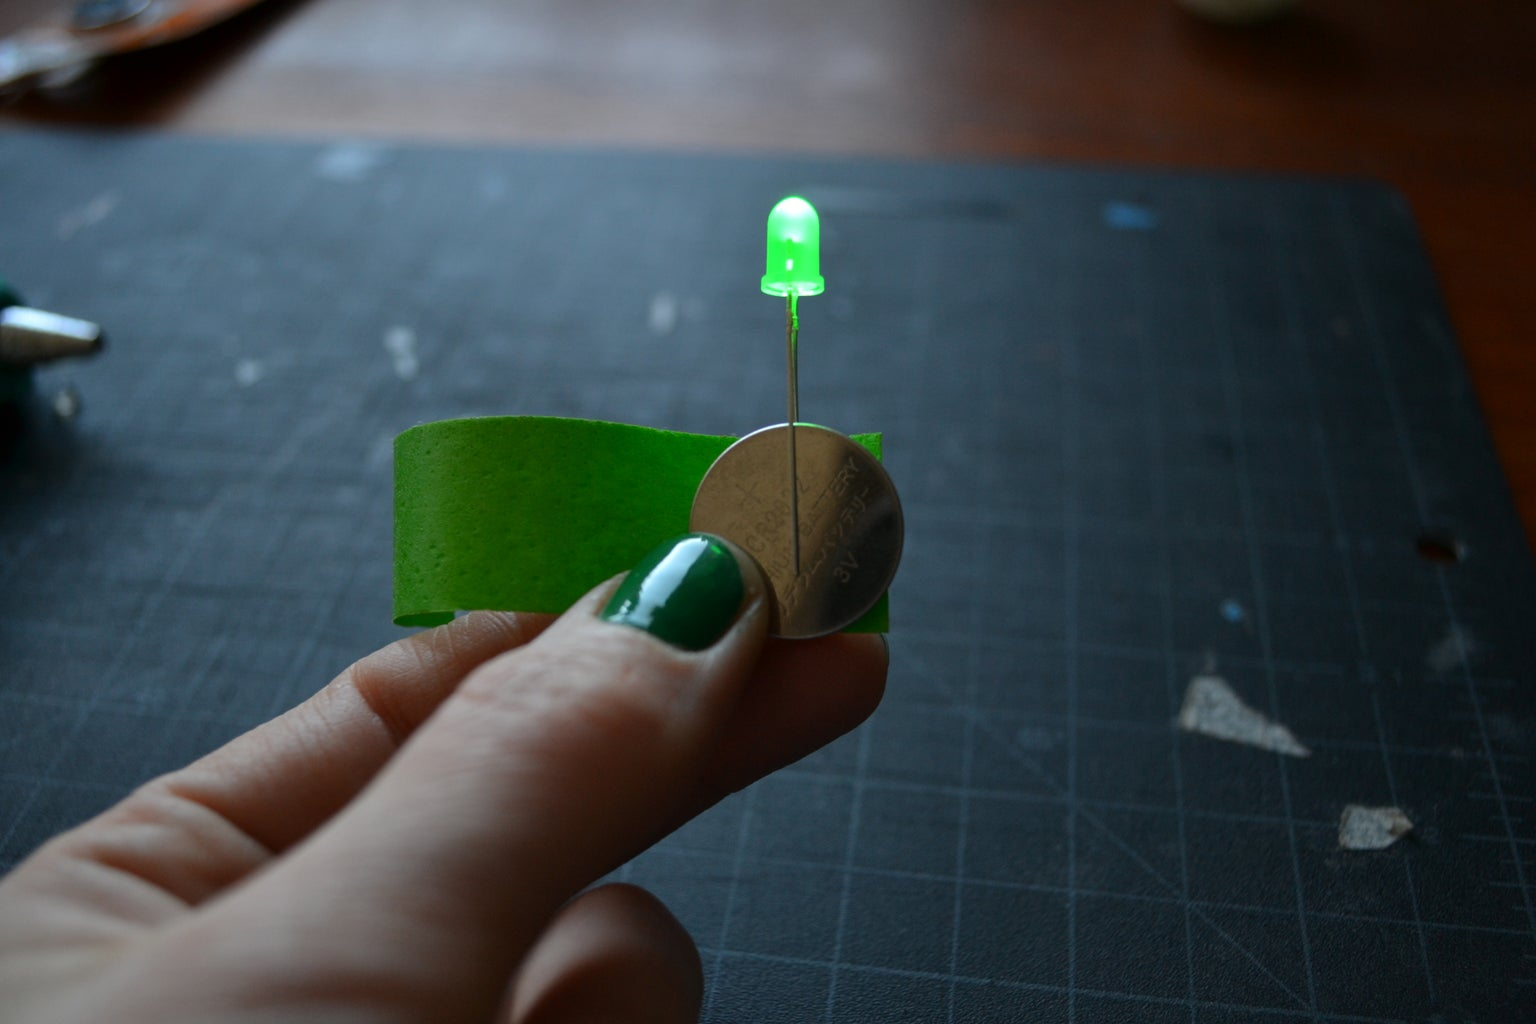 Attach the LED to the Battery